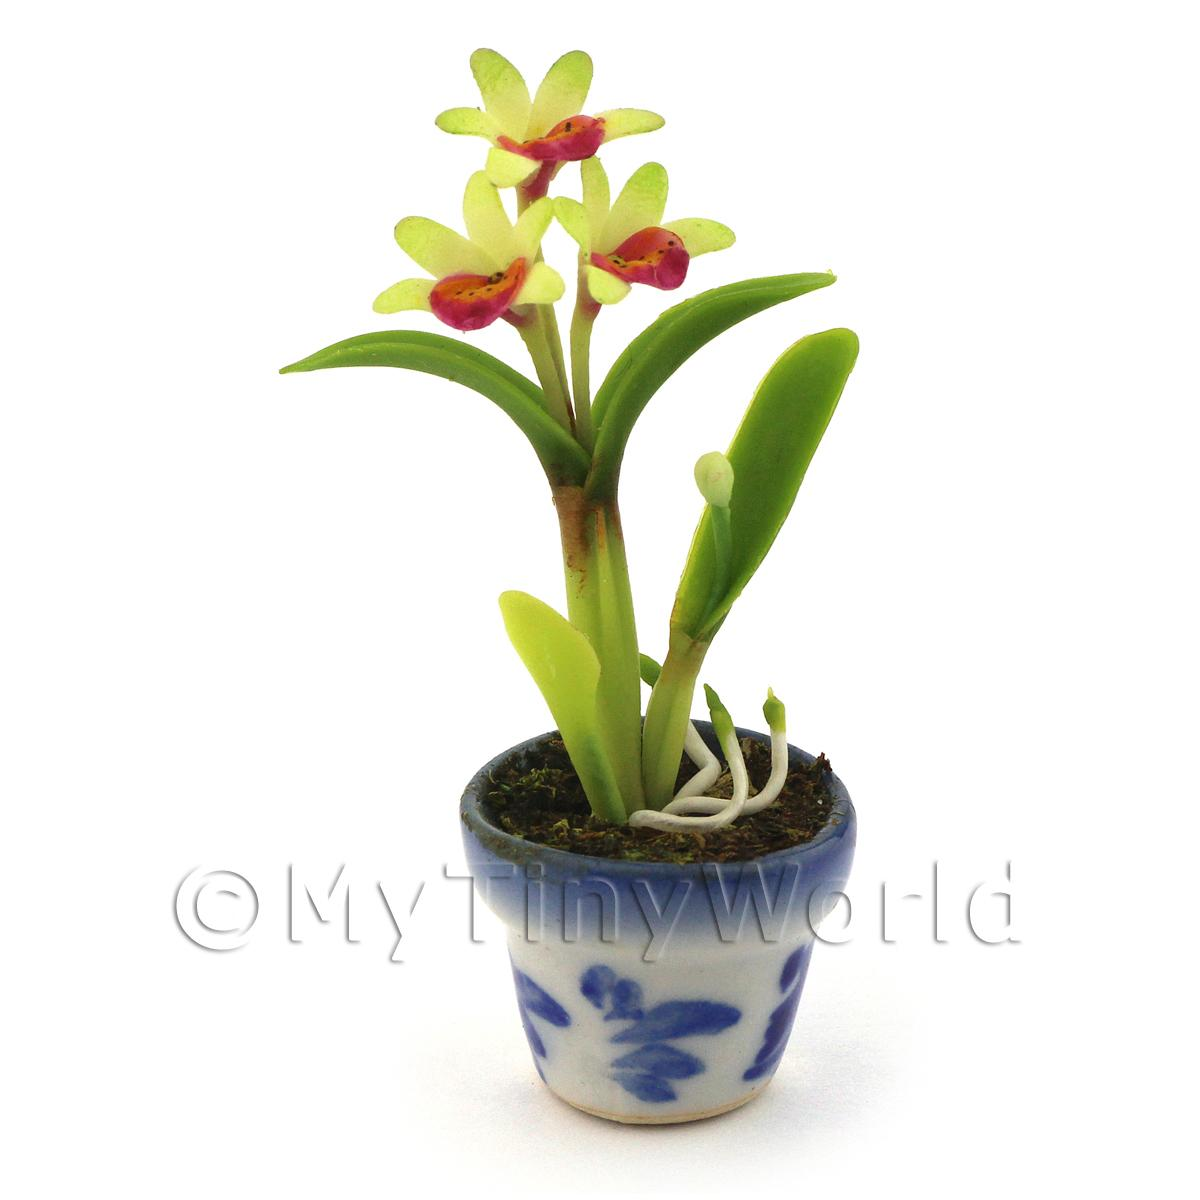 Dolls House Miniature Green Soph Orchid